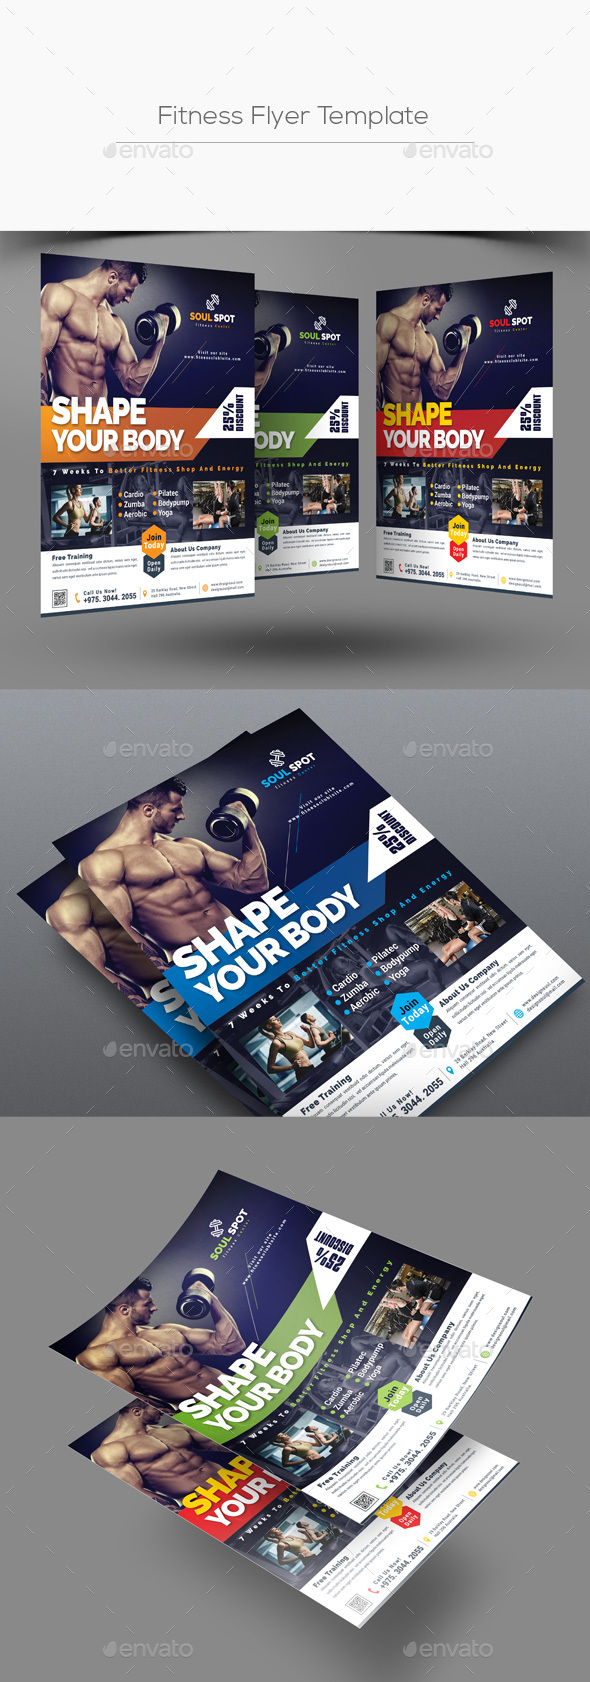 Fitness Flyer Template By Designsoul14 Graphicriver